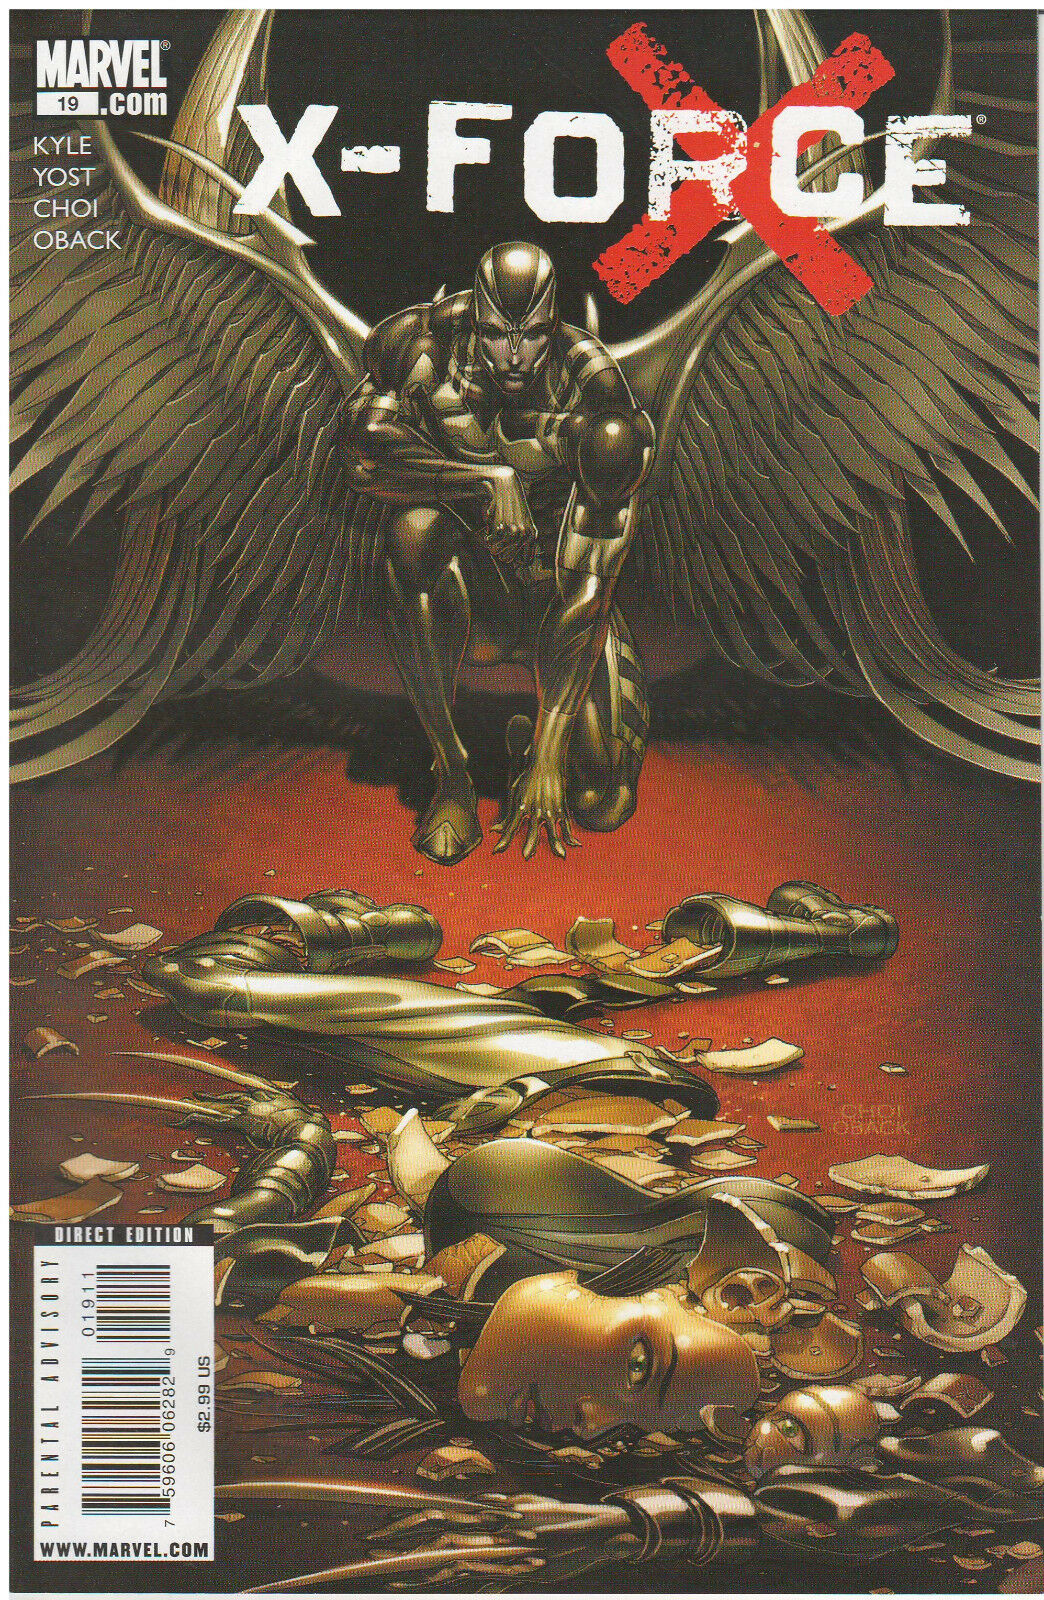 X-FORCE #19 (2008) MARVEL COMICS